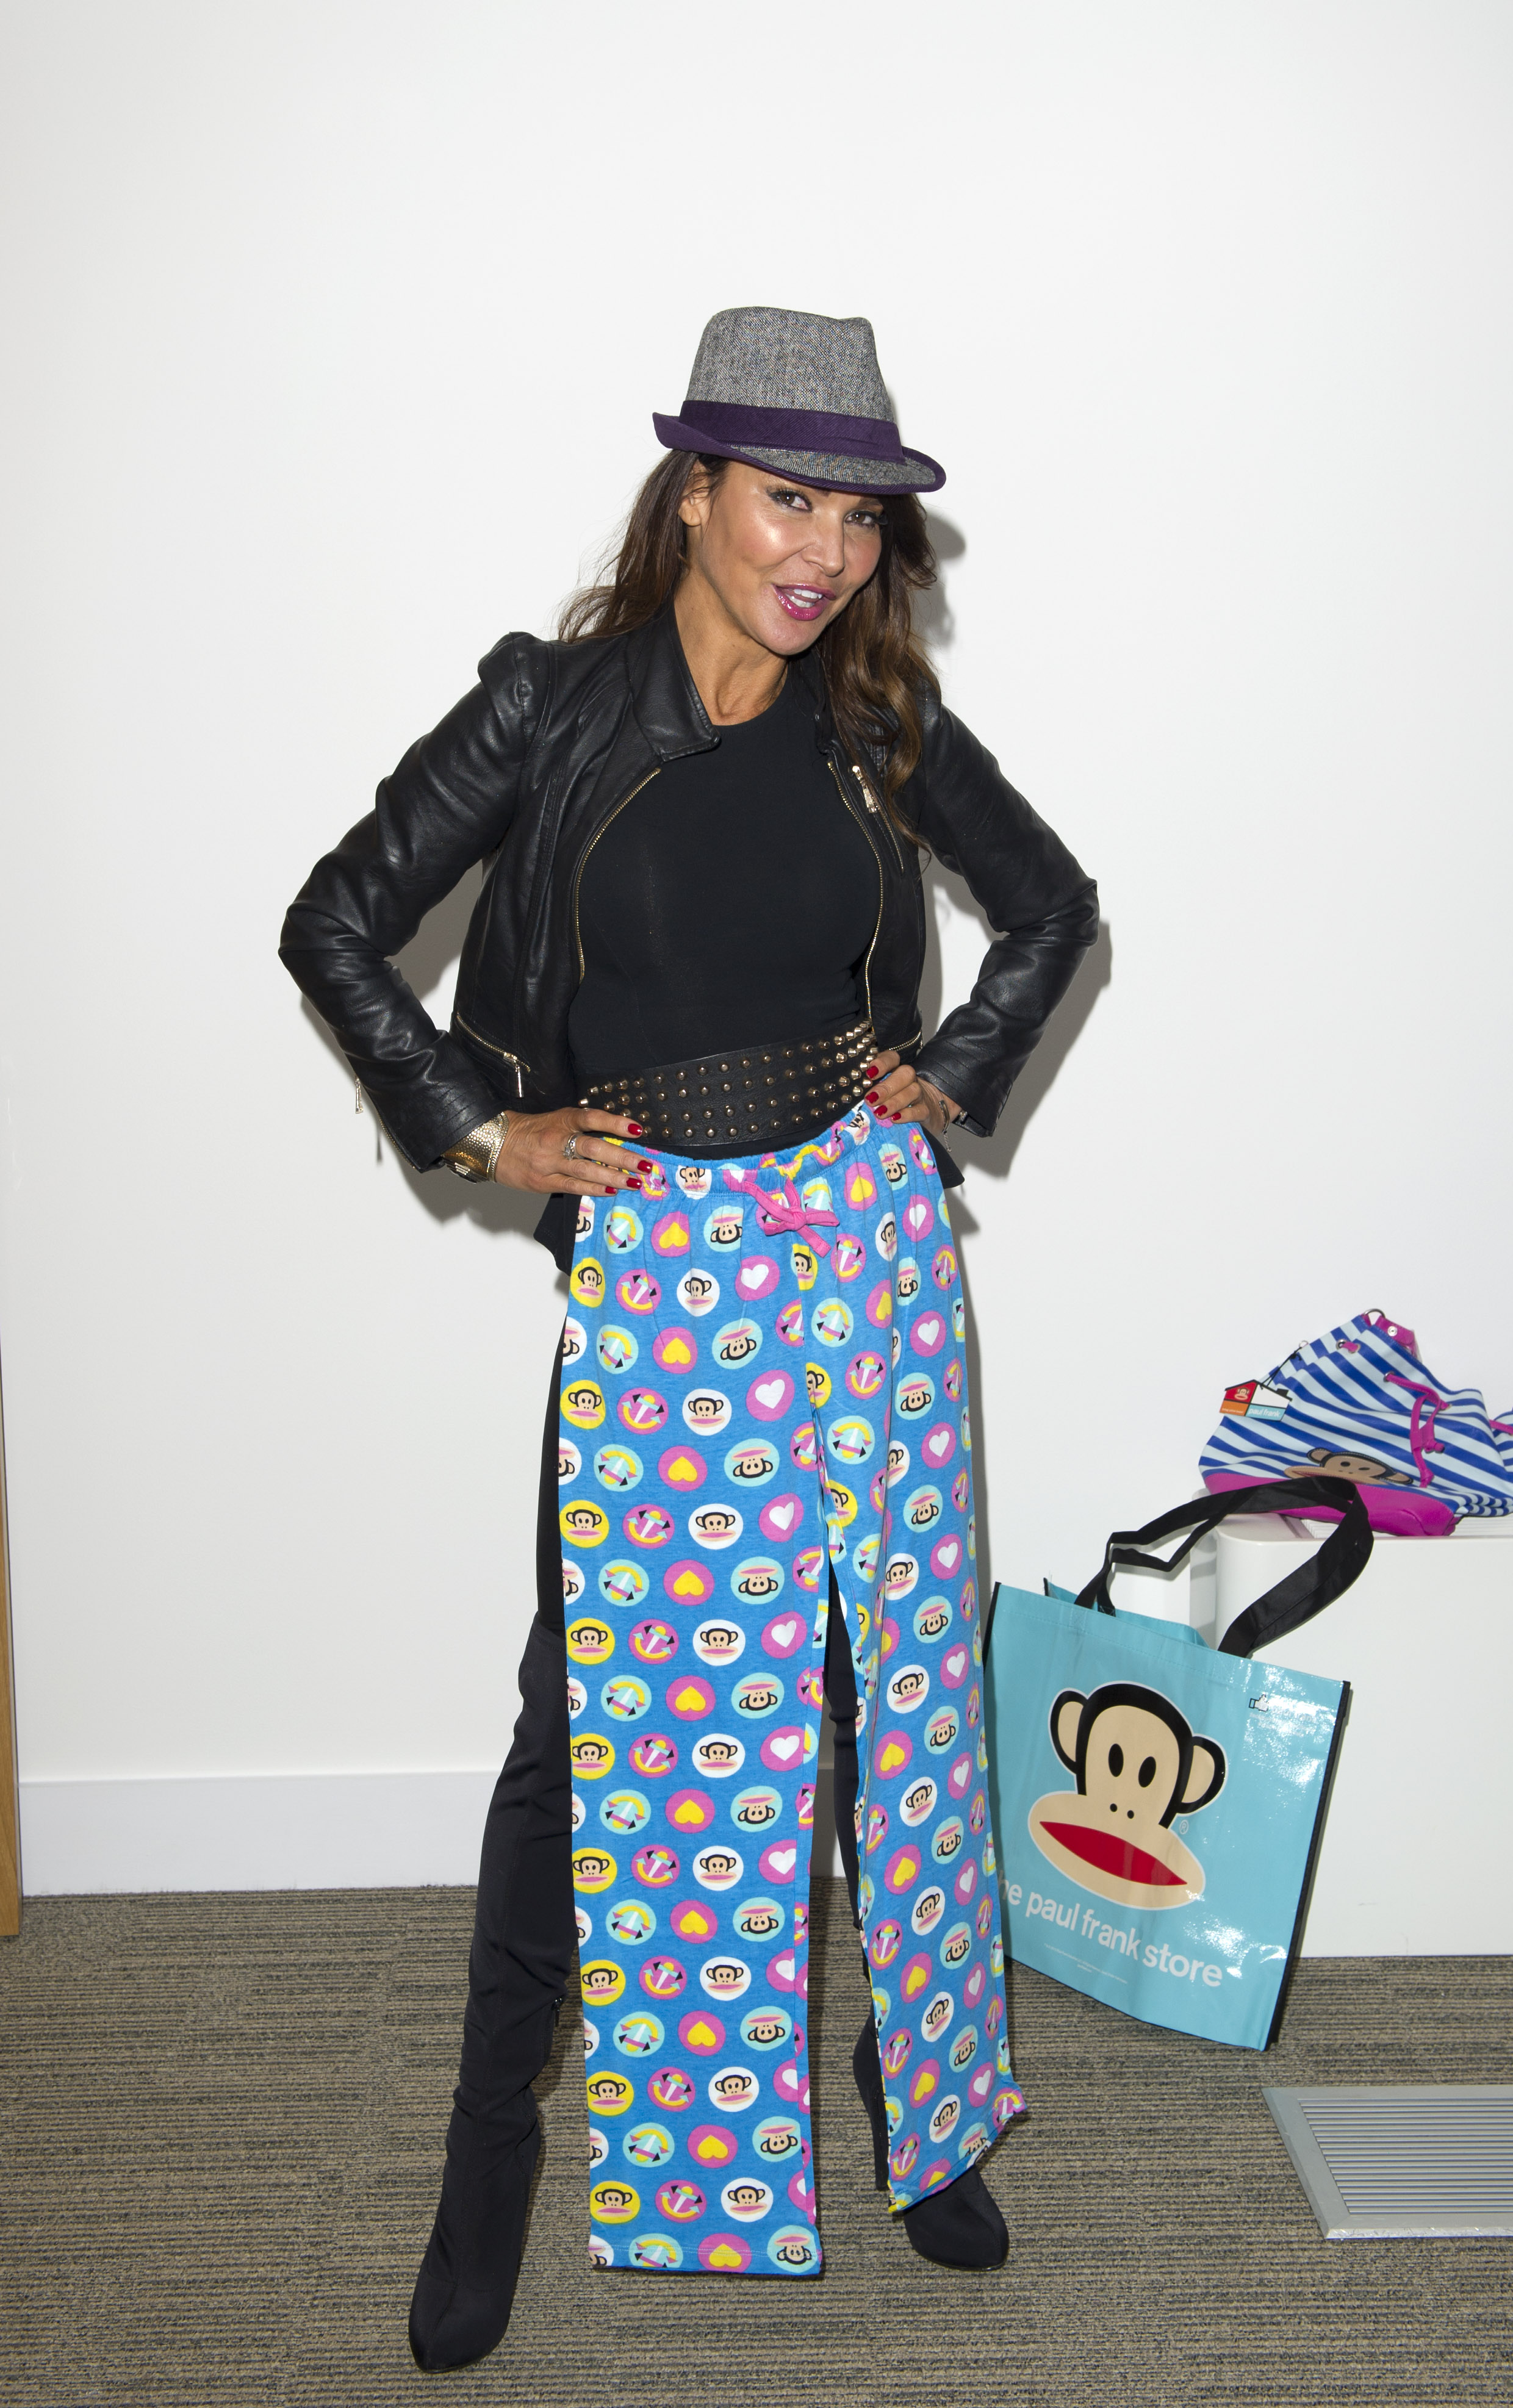 Lizzie Cundy   - Come Rock With Paul Frank 15th oct 2013 (5).jpg